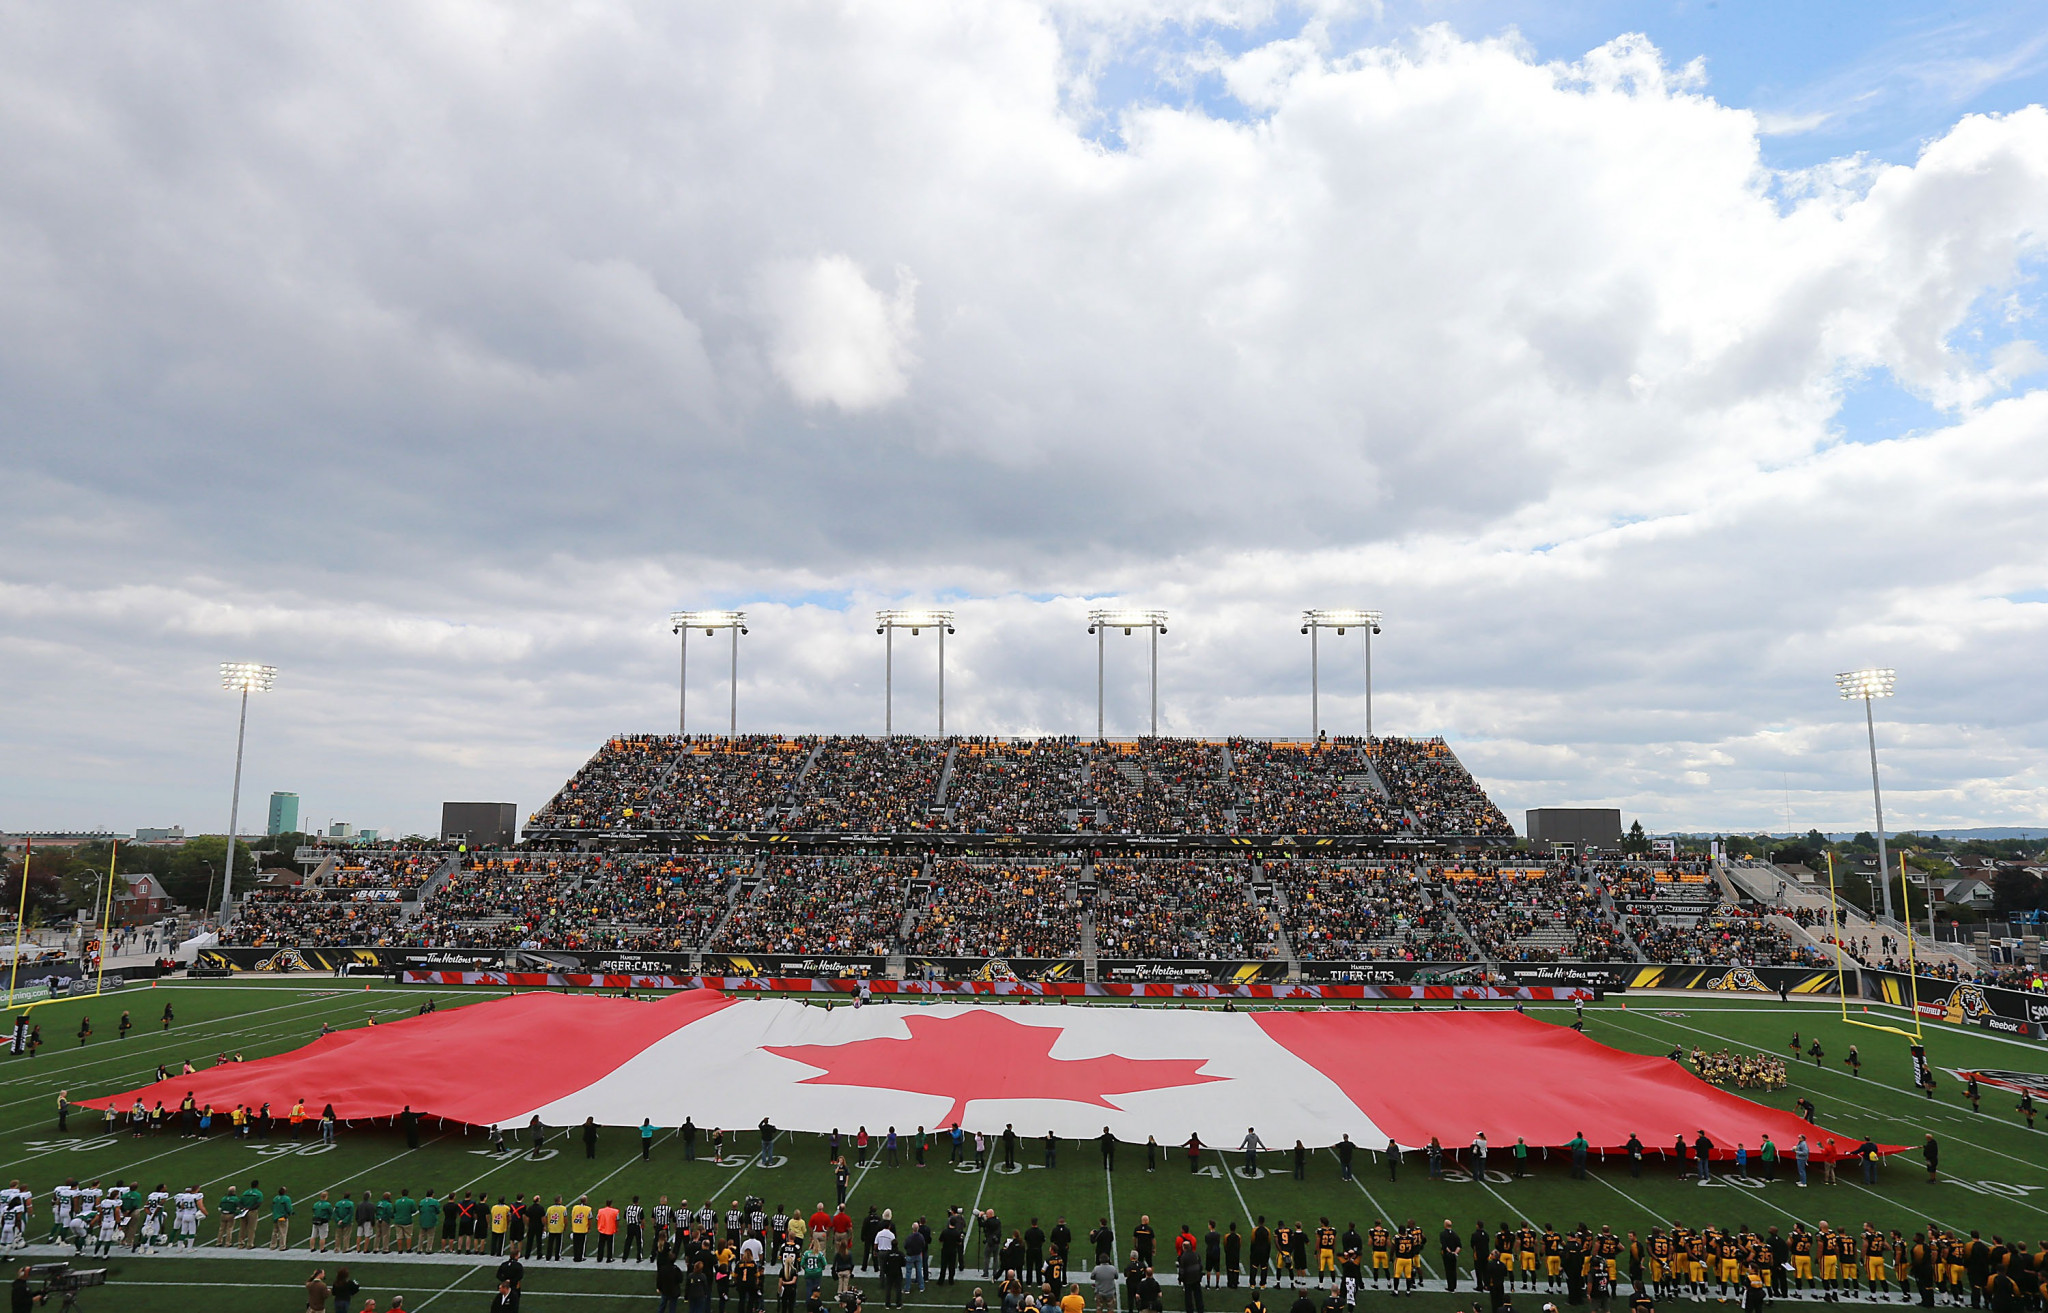 There is no obvious host for the 2026 Commonwealth Games, now that a private Hamilton bid has abandoned its efforts to stage the event that year ©Getty Images